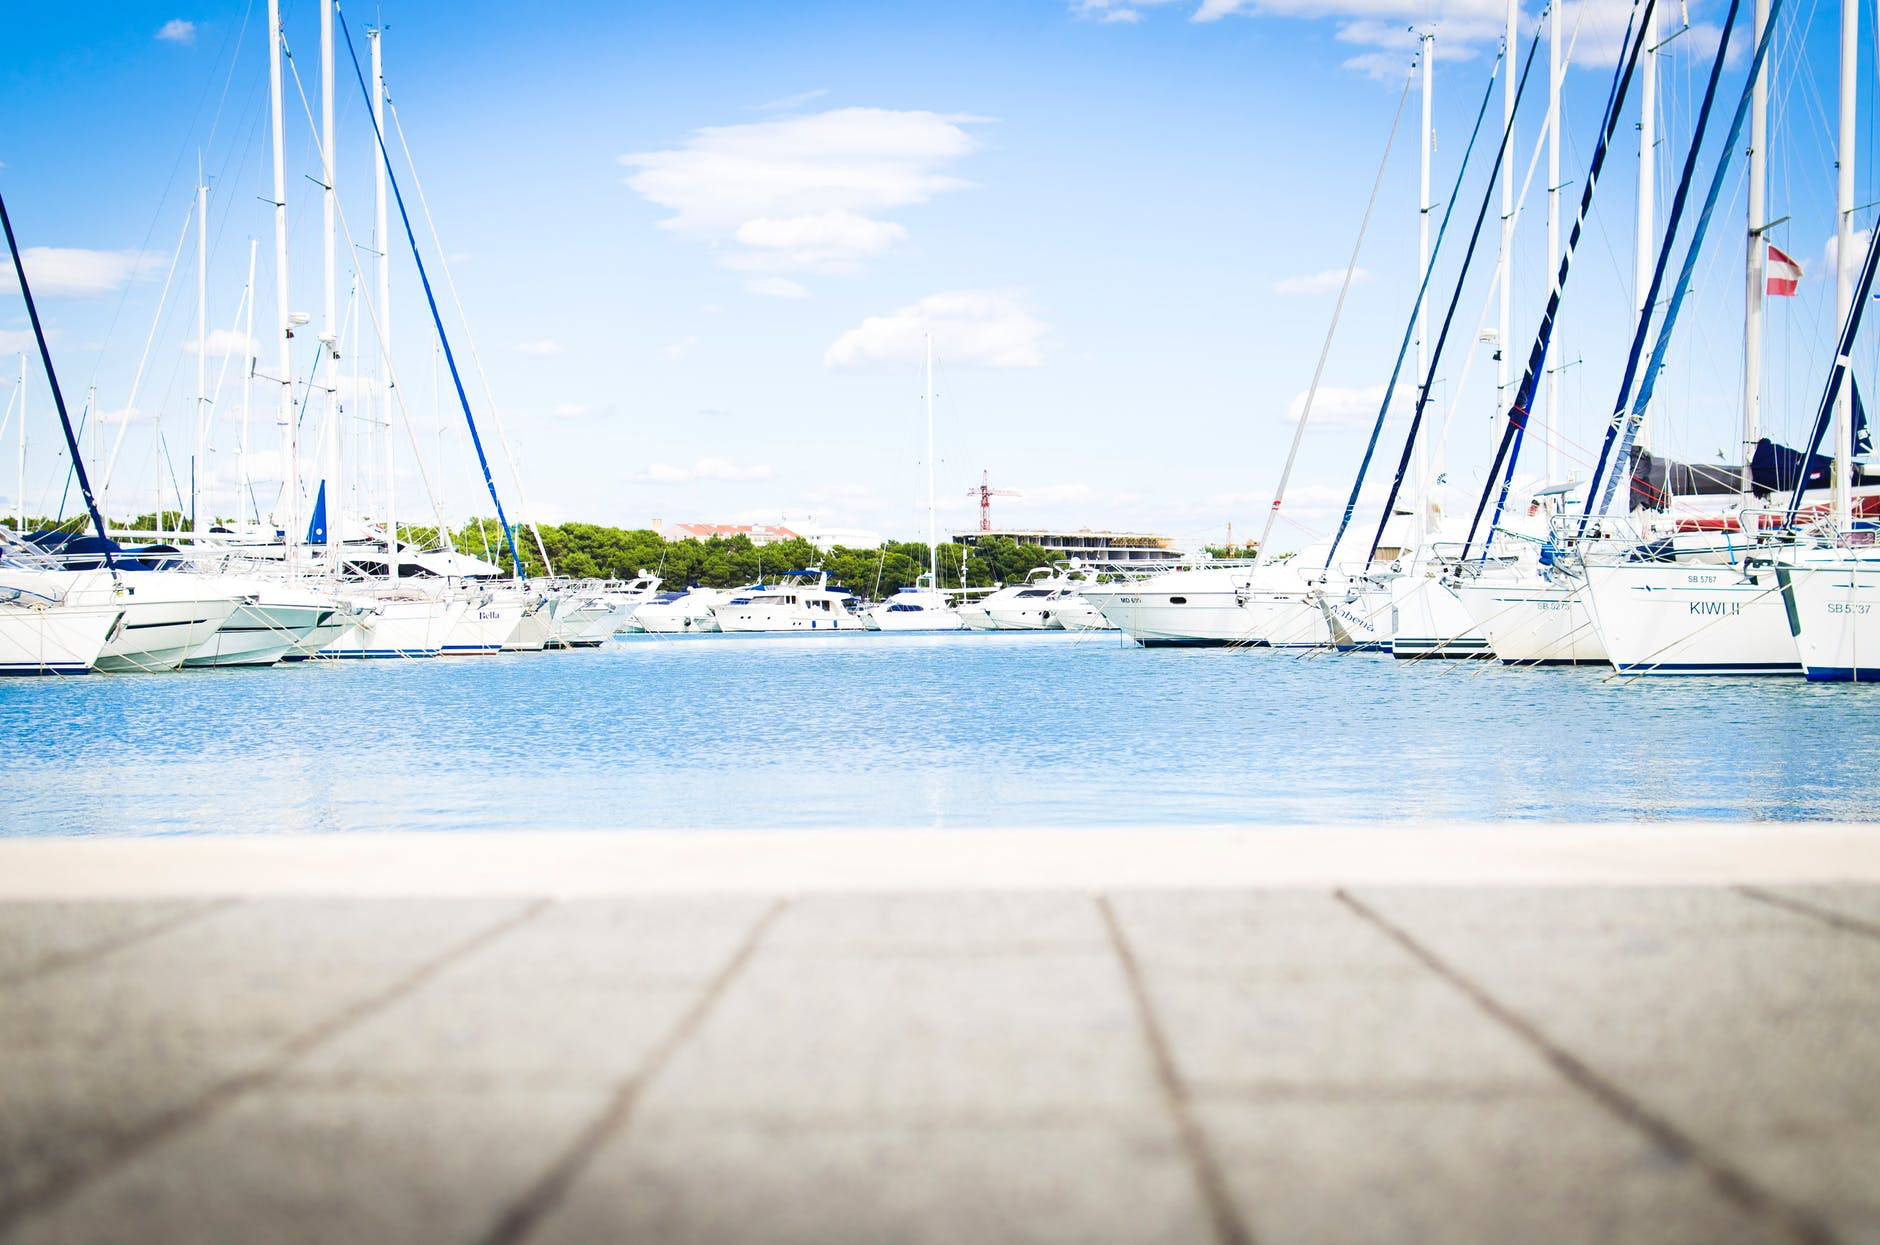 Boat Marinas and Events in Chicago